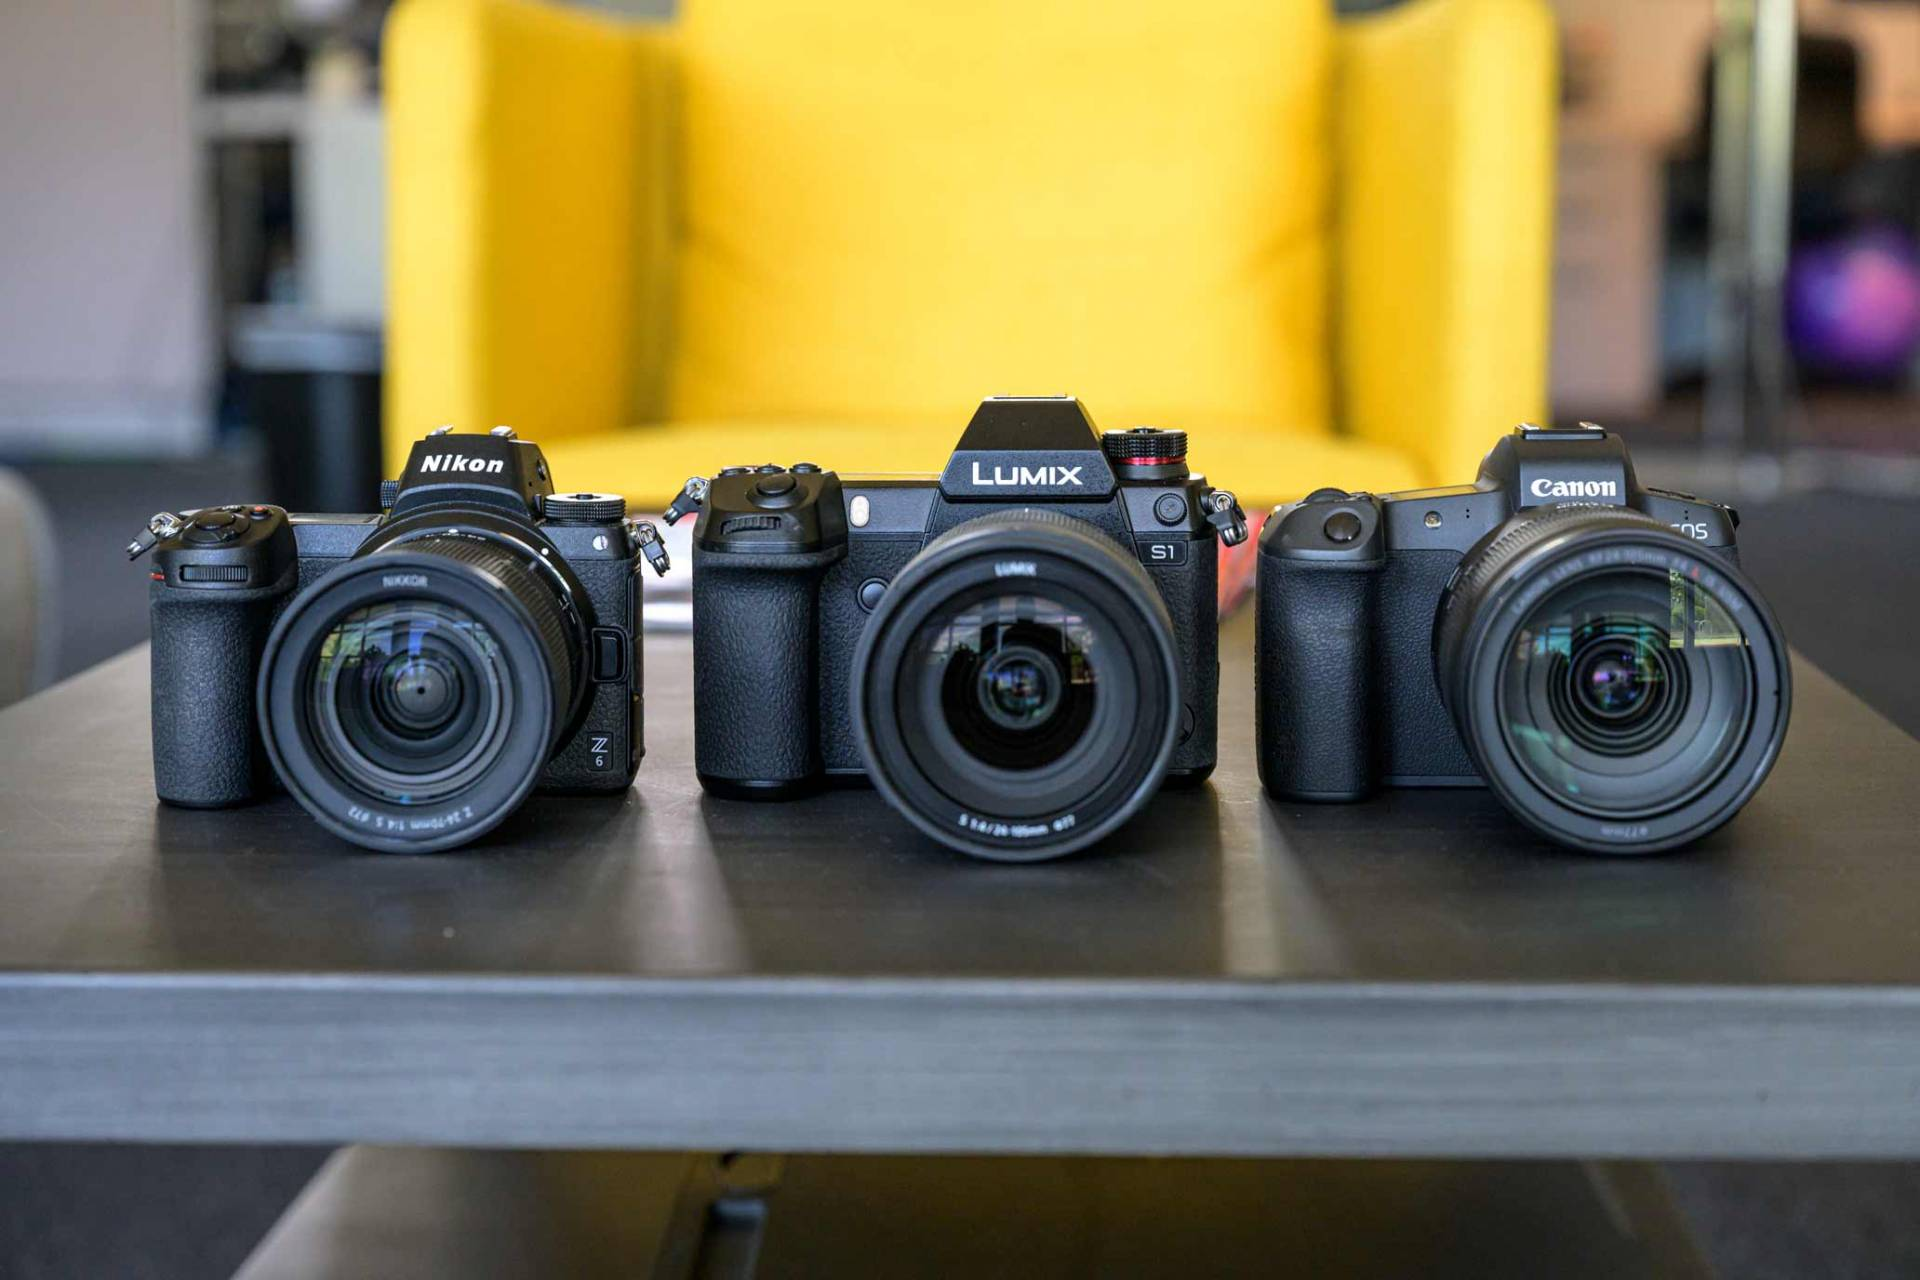 Nikon Z 6, Pansonic Lumix S1 and Canon EOS R in a row showing comparable sizes